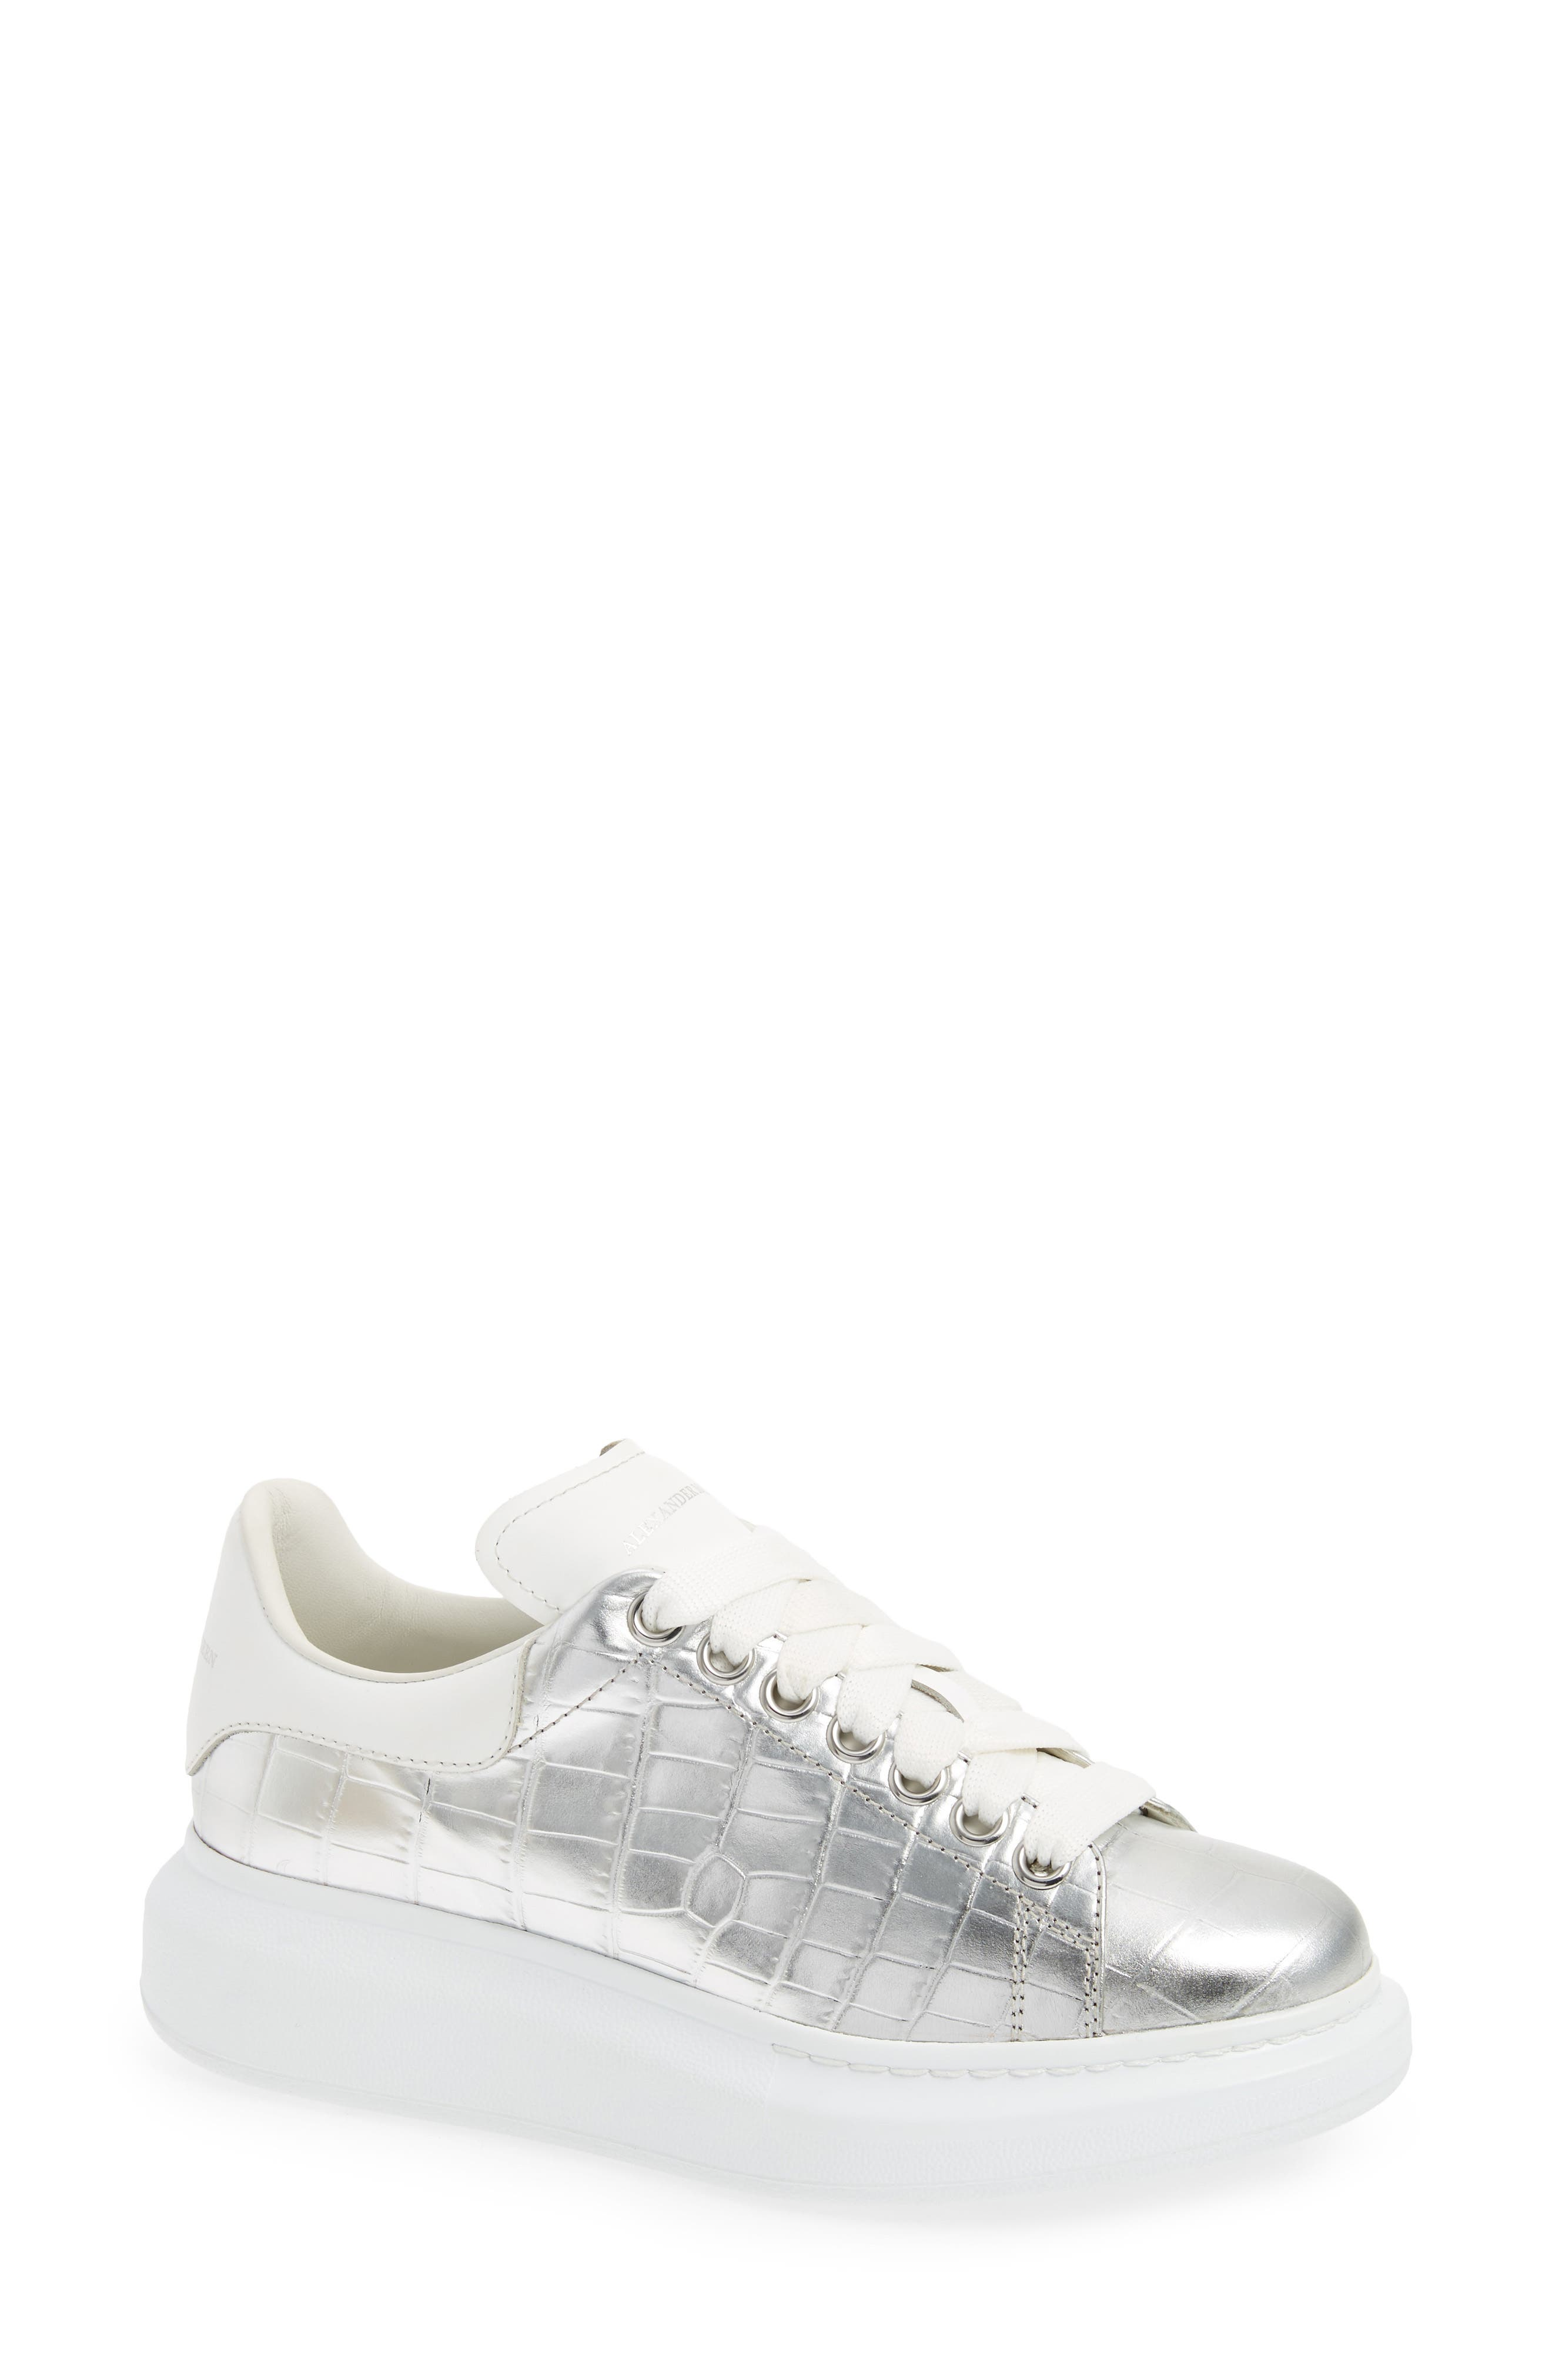 Croc Embossed Lace-Up Sneaker,                             Main thumbnail 1, color,                             Metallic Silver